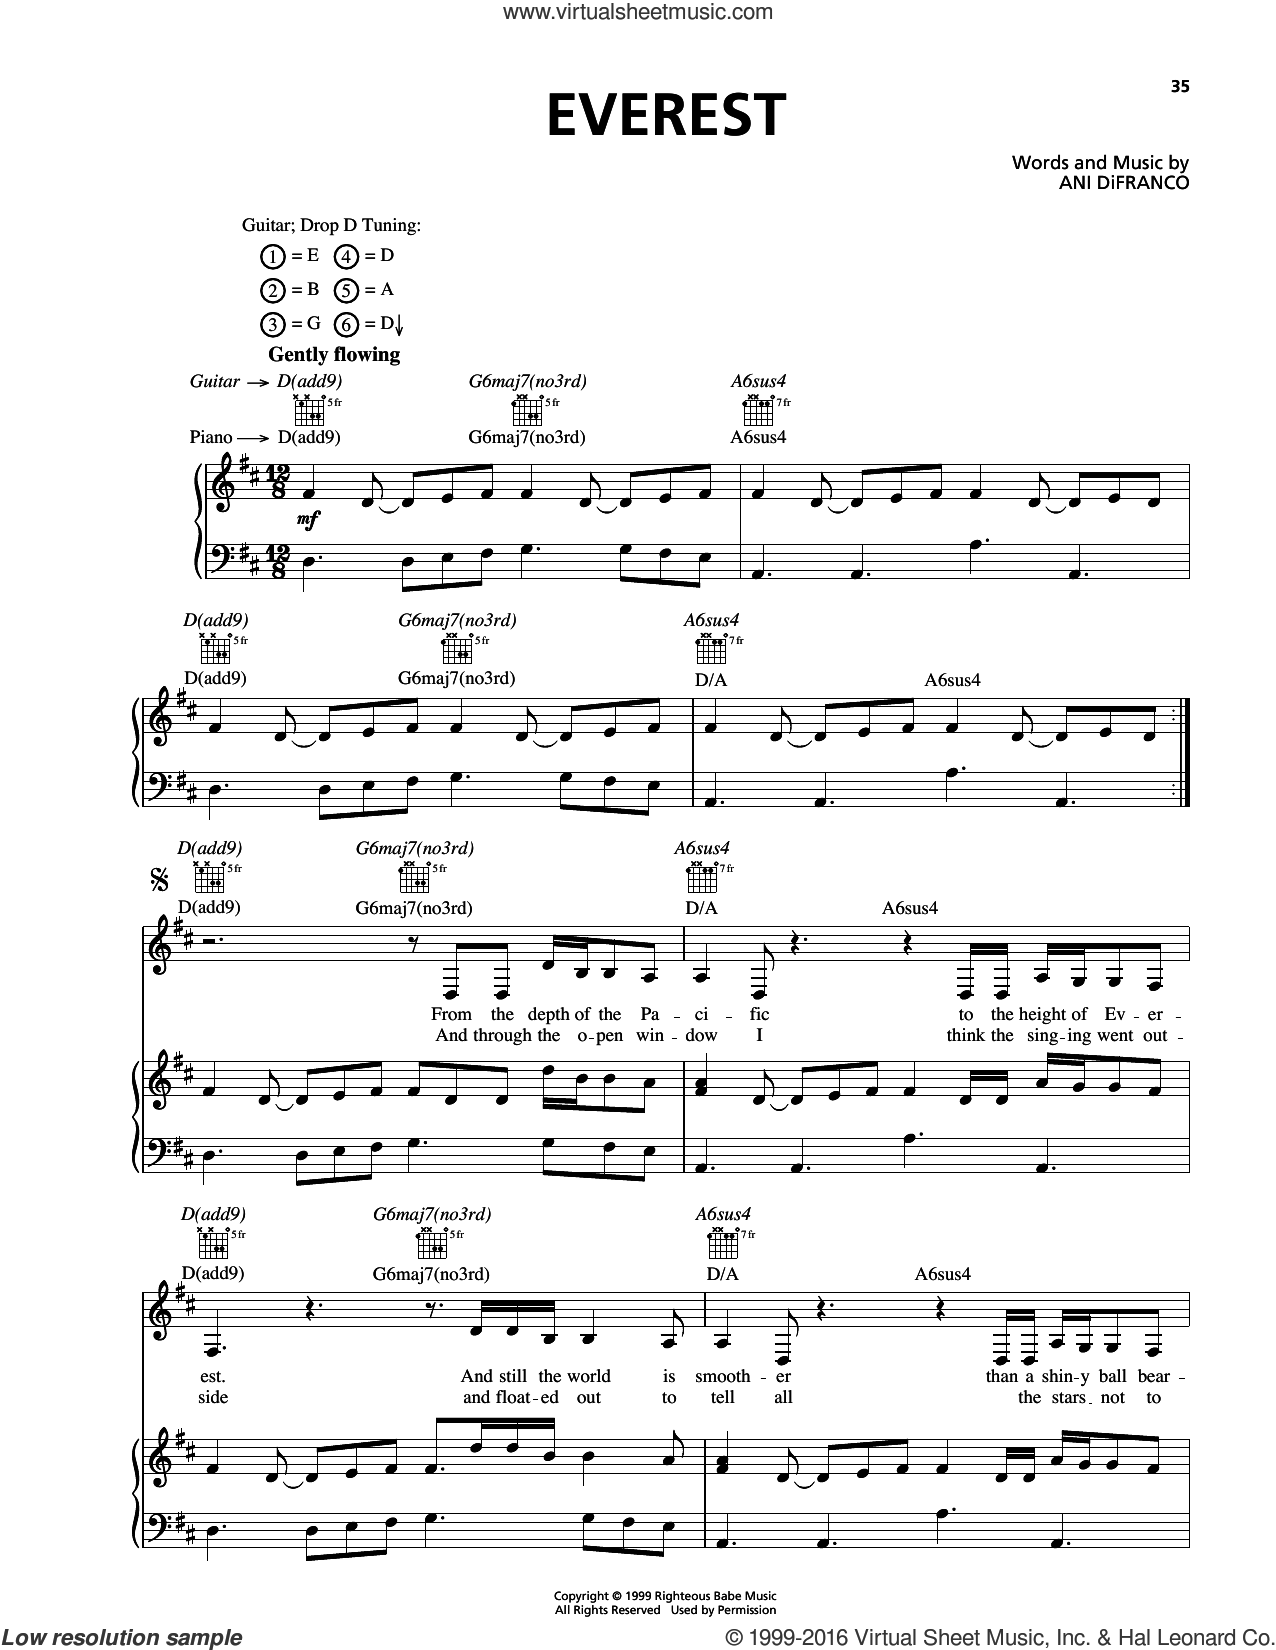 Everest sheet music for voice, piano or guitar by Ani DiFranco, intermediate skill level